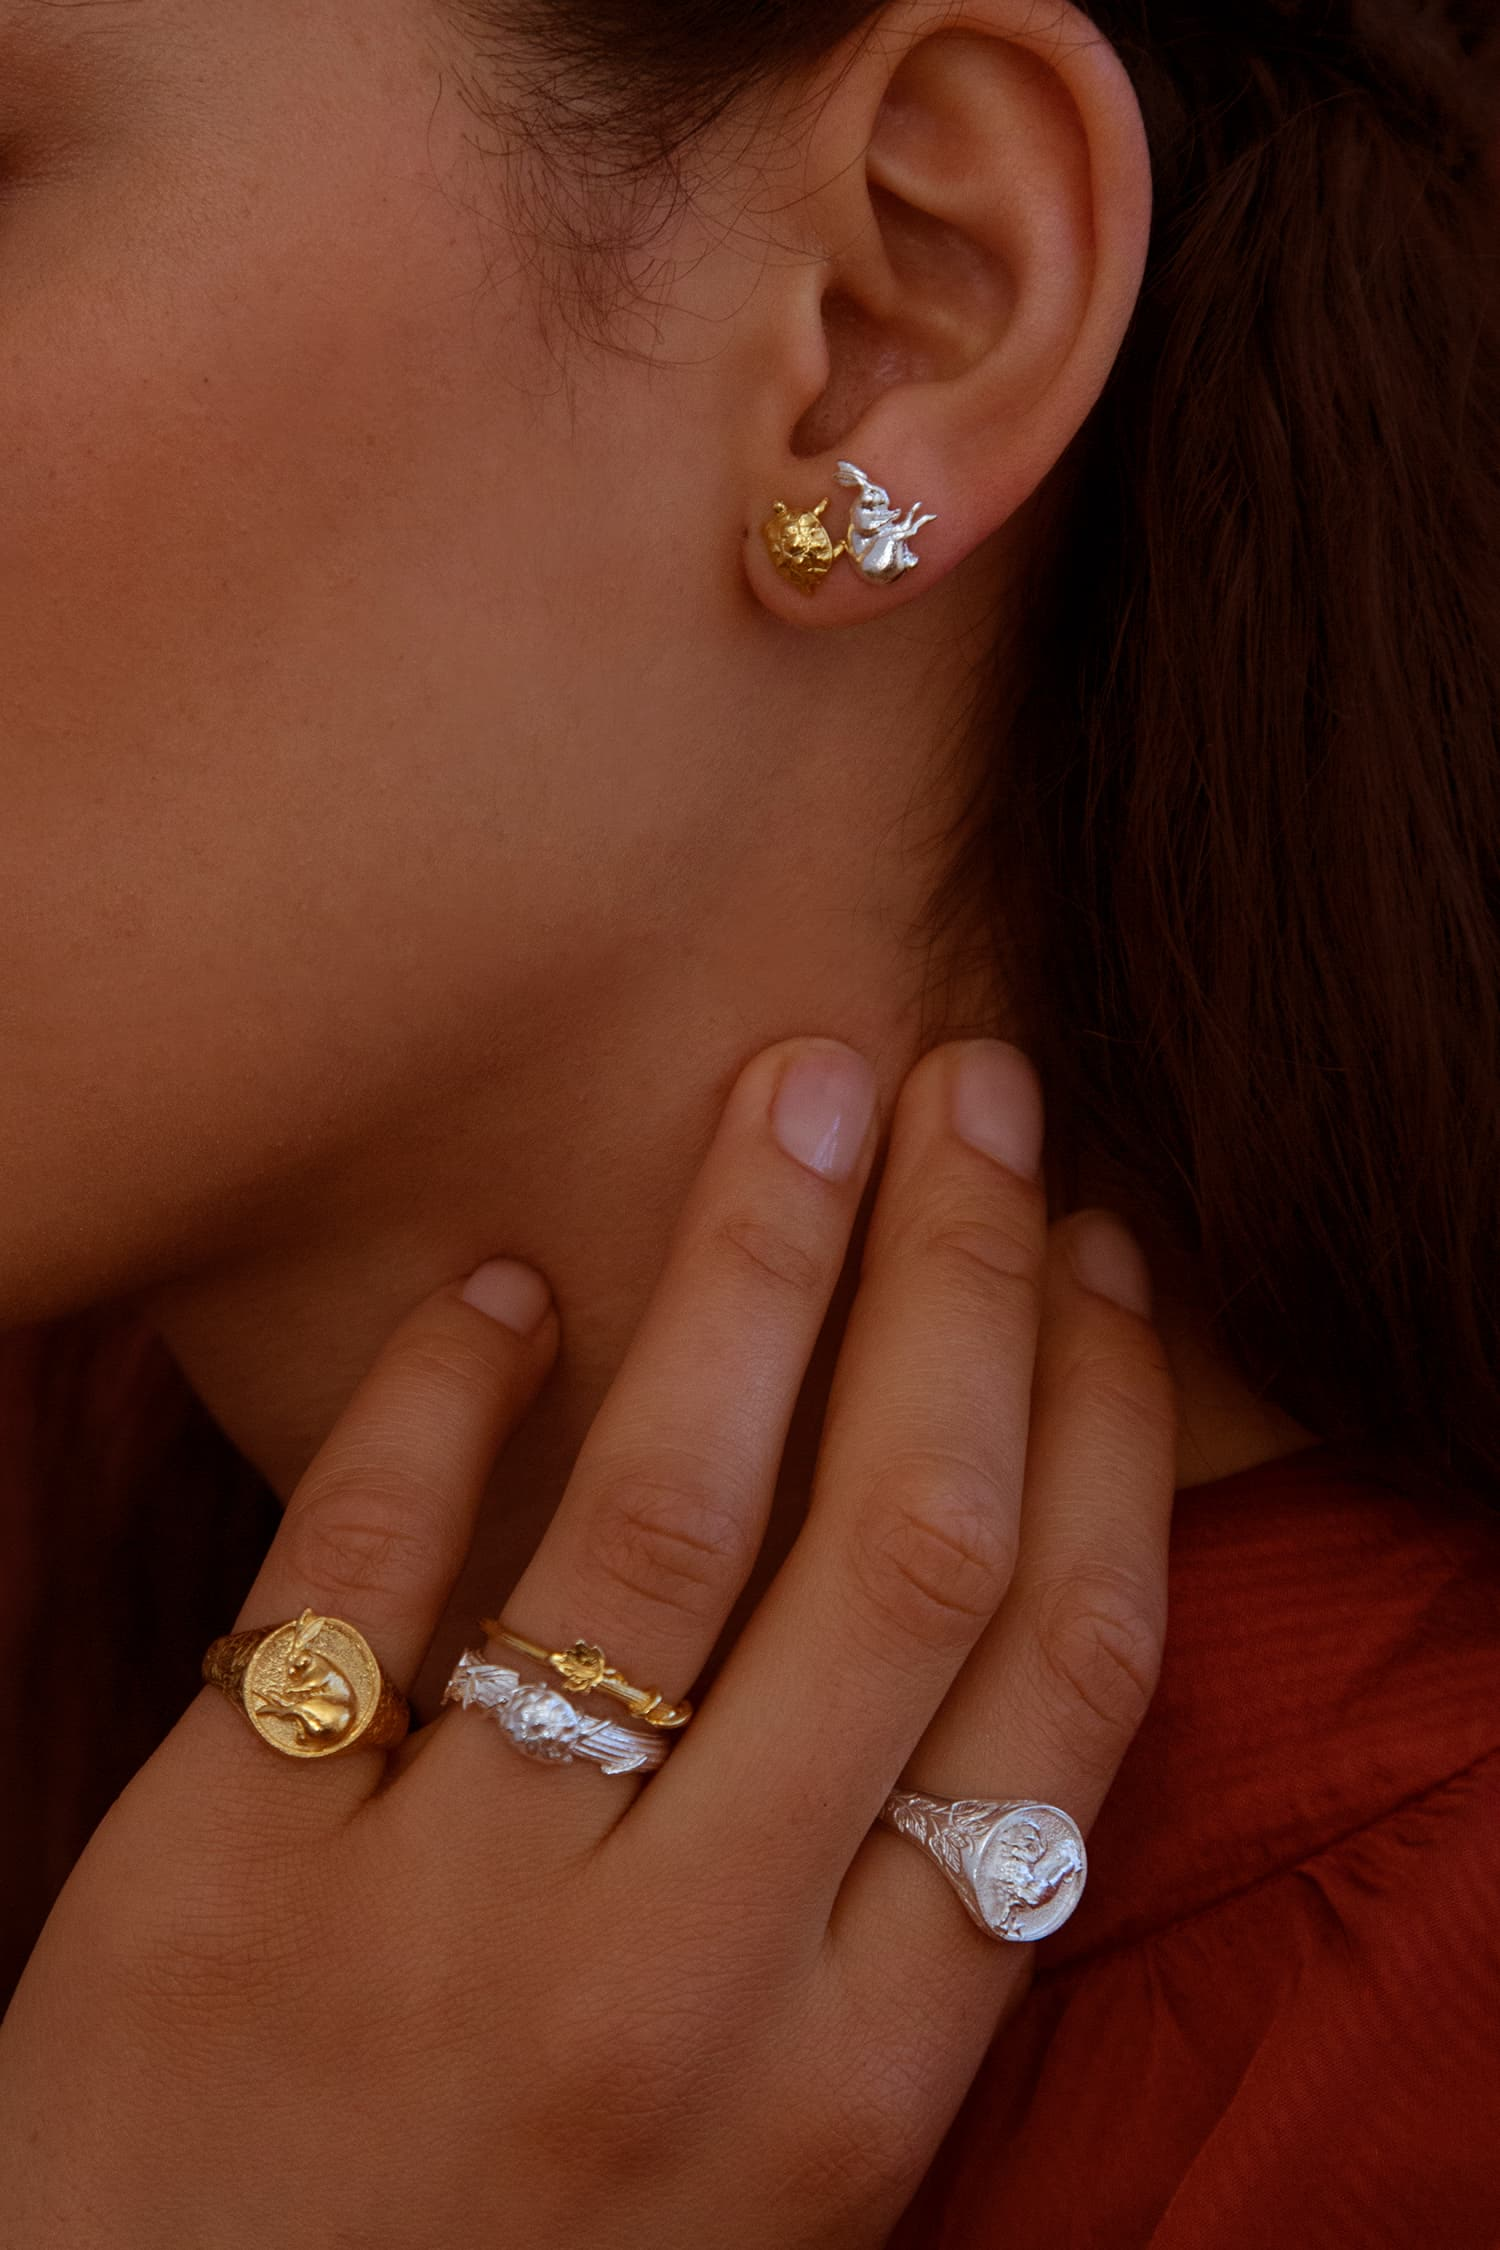 Model wears Fables Tortoise and Hare Stud earrings and selection of fables signet and fine column rings